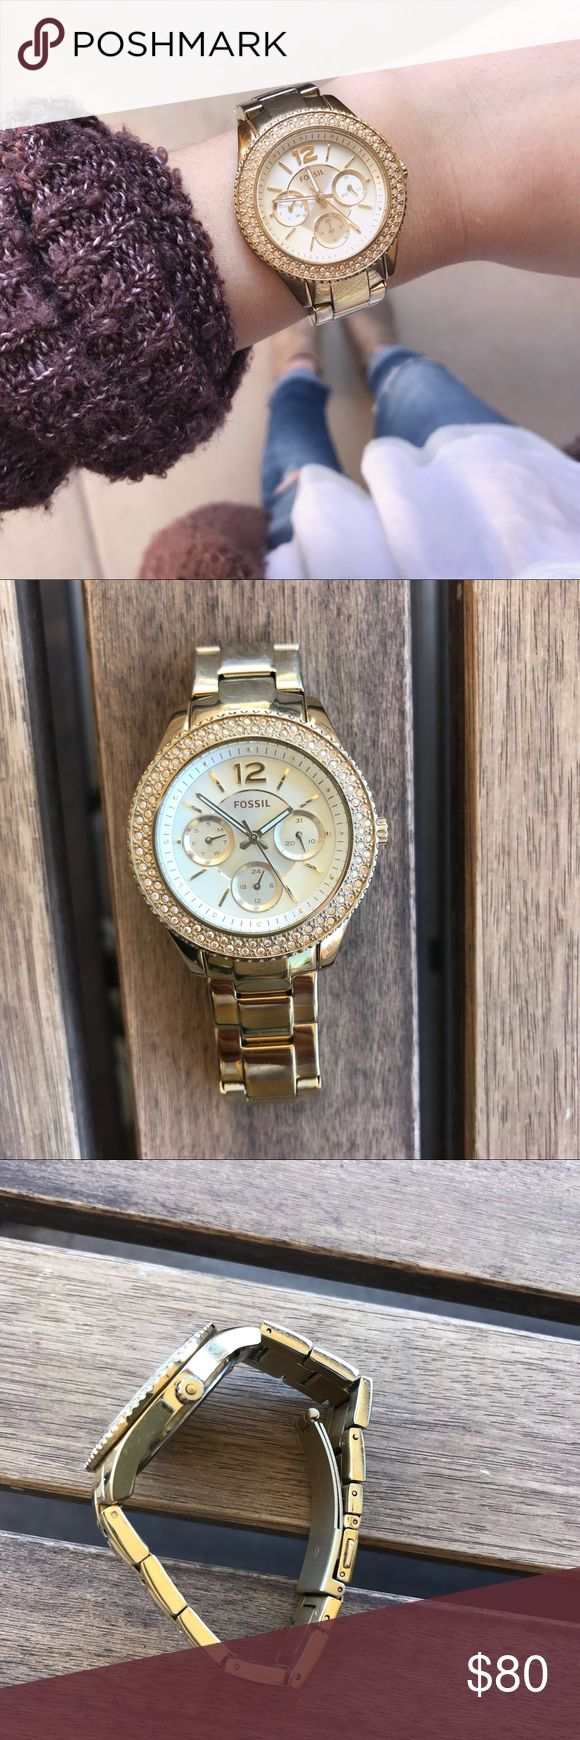 Gold Fossil Watch I'm negotiable on the price!  Beautiful yellow gold watch  Has some normal wear on it but doesn't affect the beauty of the face! Rhinestones are perfectly intact ❤️ Fossil Accessories Watches